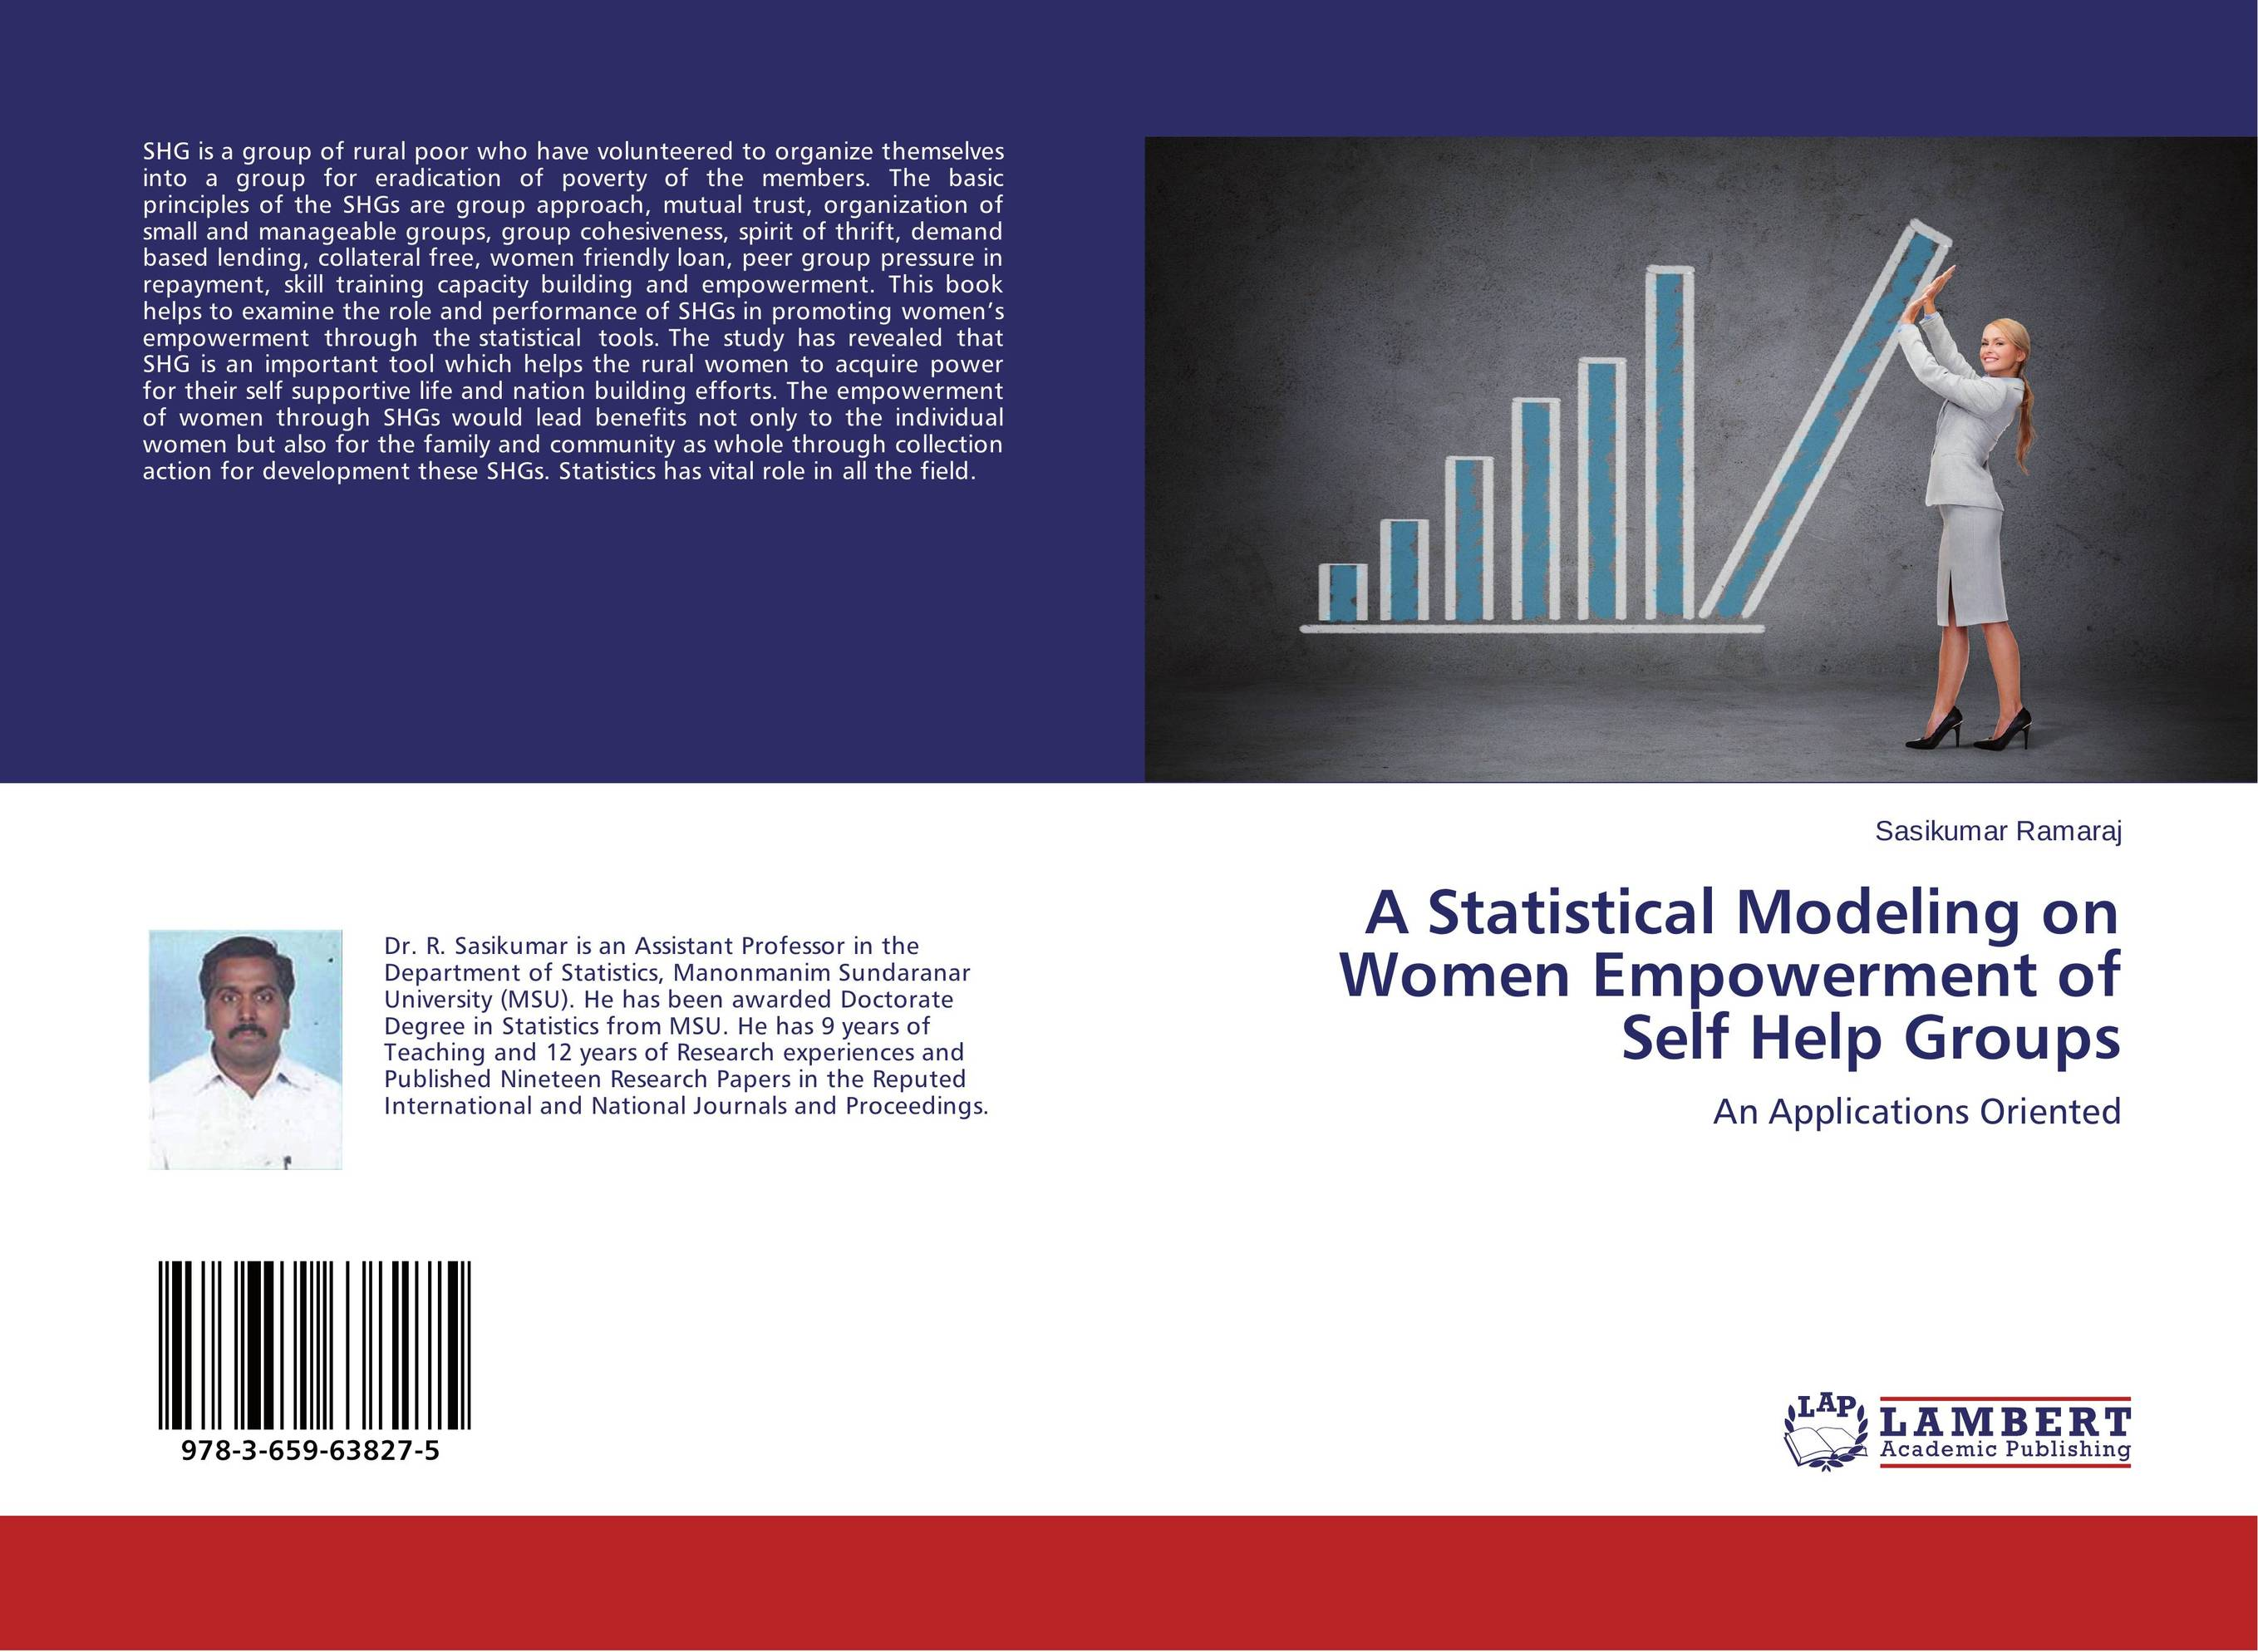 A Statistical Modeling on Women Empowerment of Self Help Groups women empowerment through self help groups in rural areas